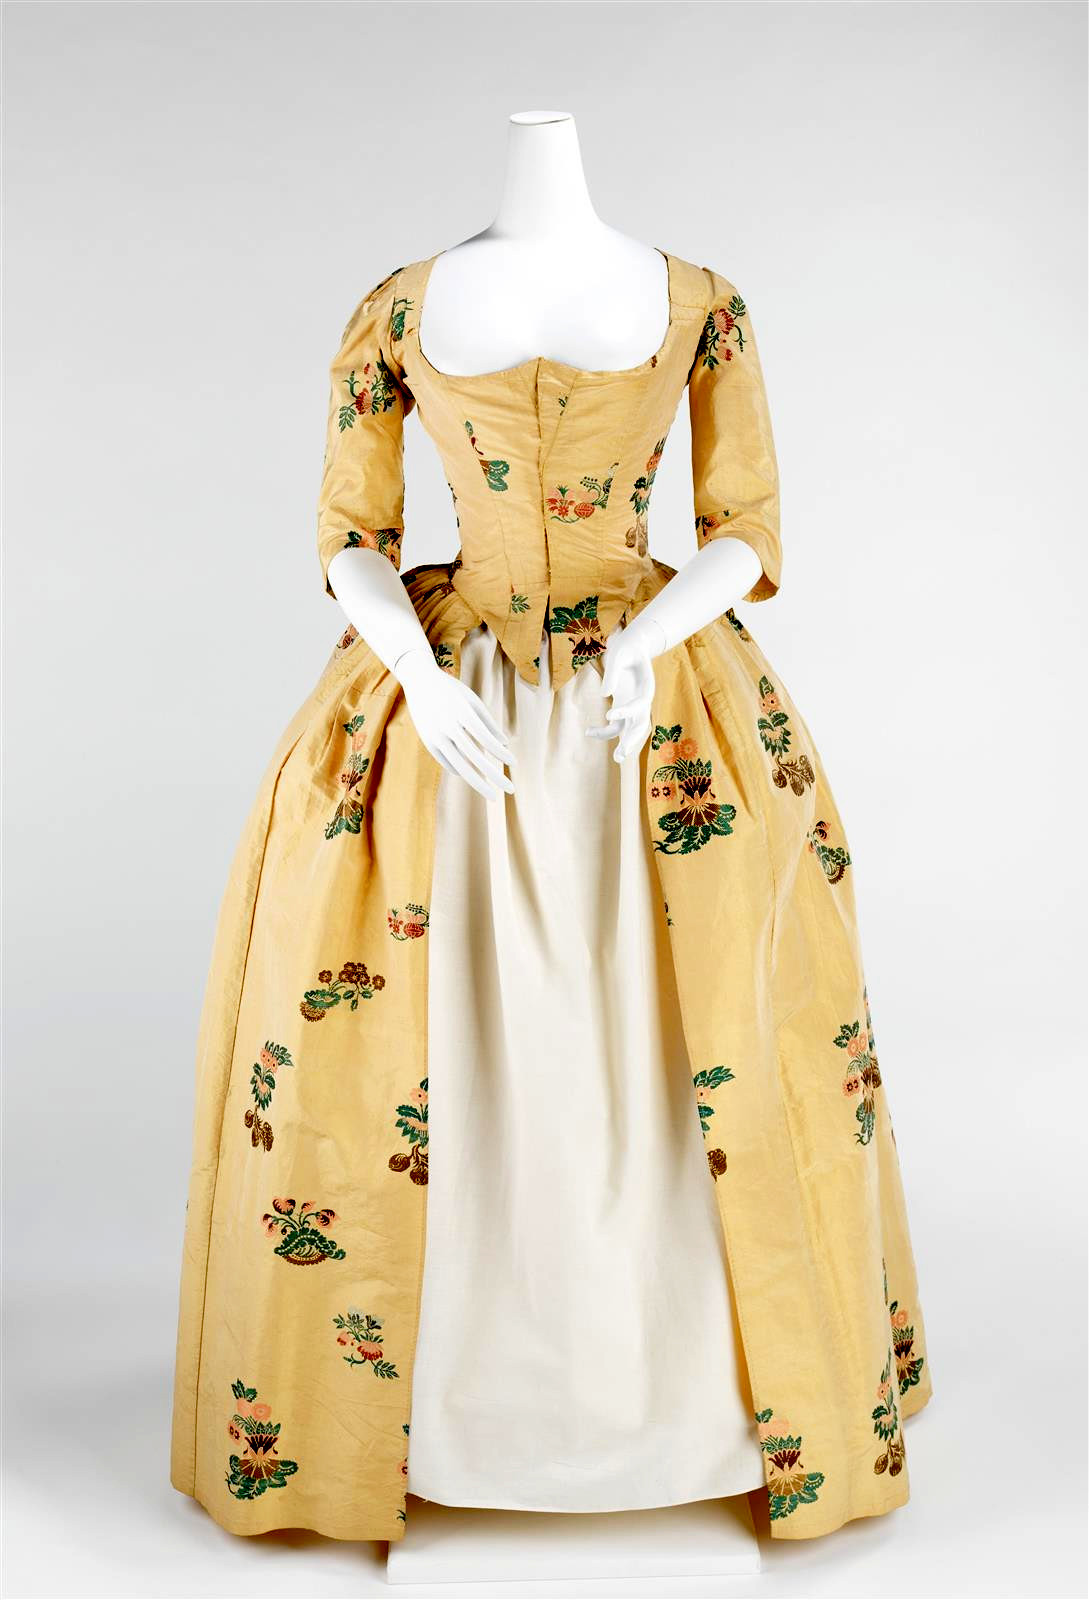 1776. Robe à l'Anglaise. British. Silk